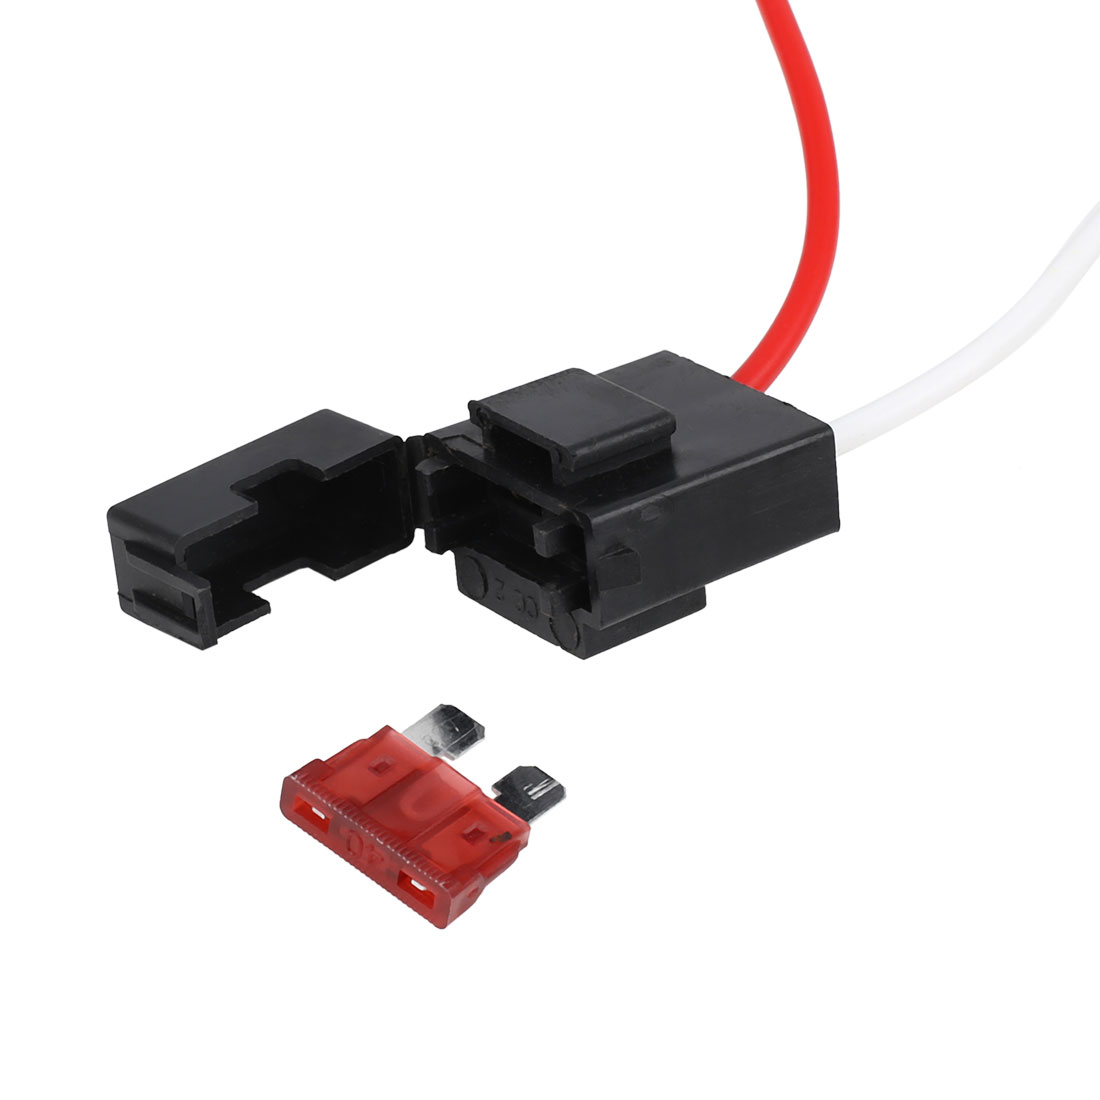 hight resolution of easy wiring harness kit car wiring diagram used easy wiring harness kit car